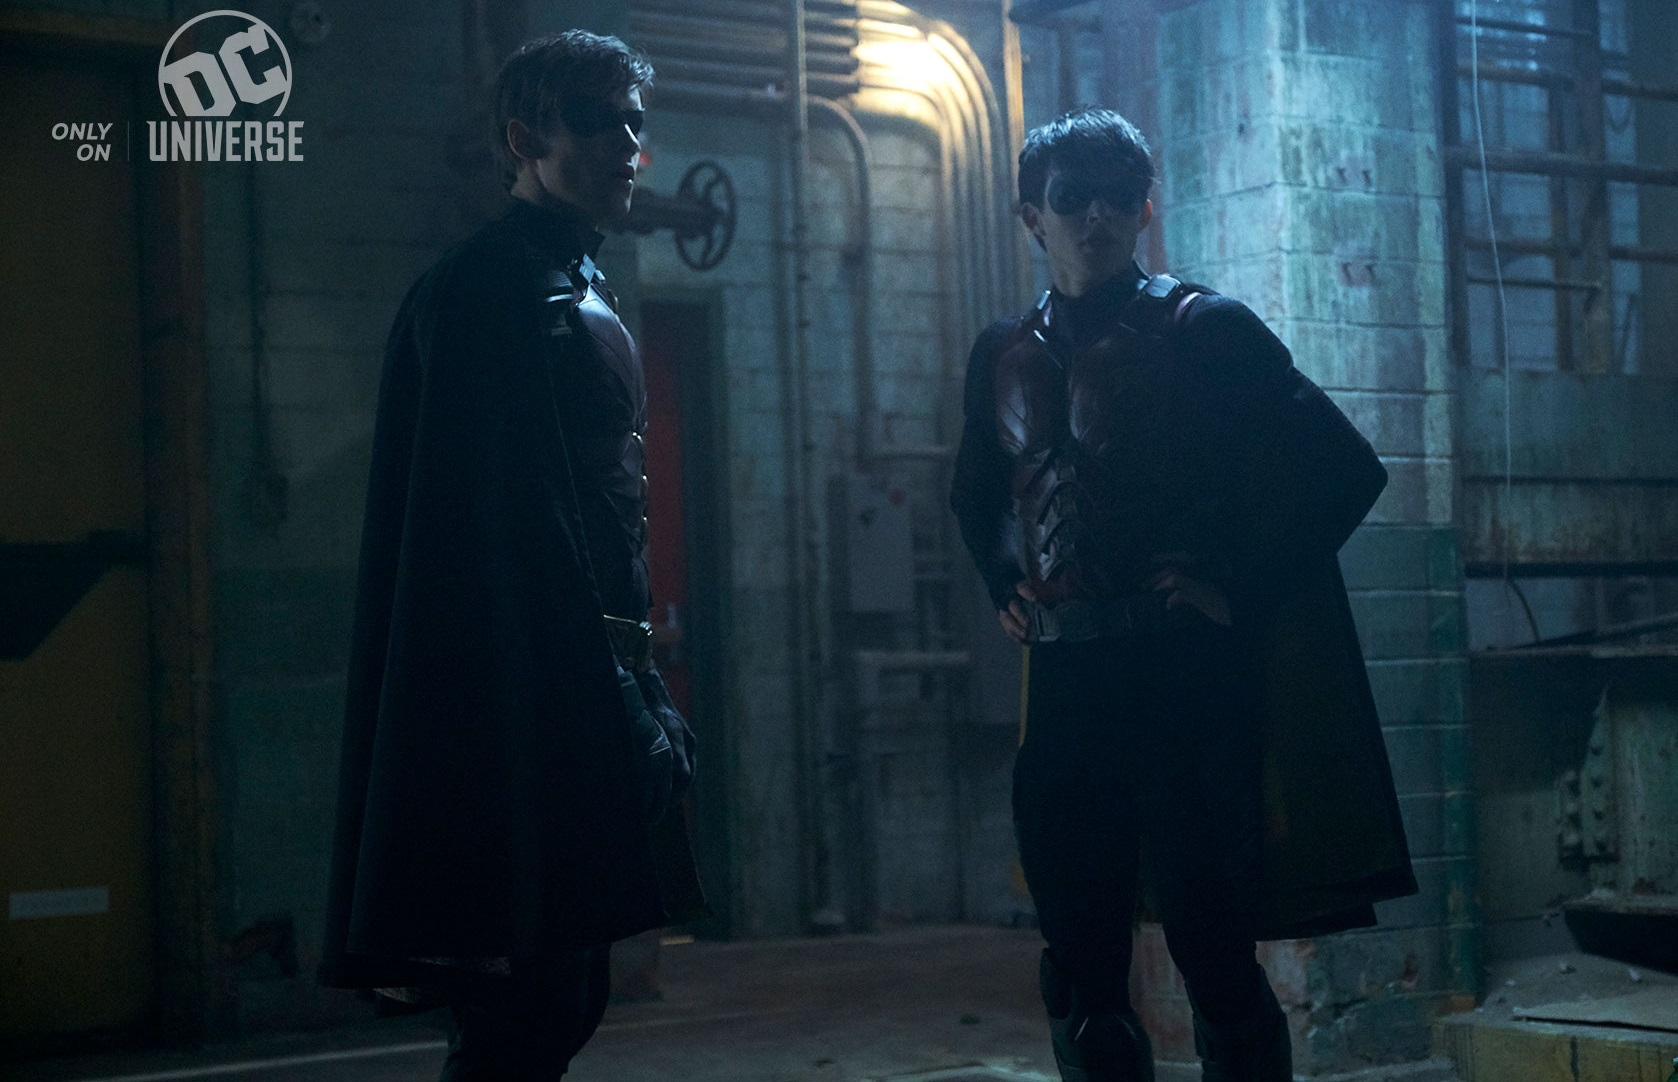 https://www.dccomics.com/blog/2018/09/14/the-robins-face-off-in-new-titans-images